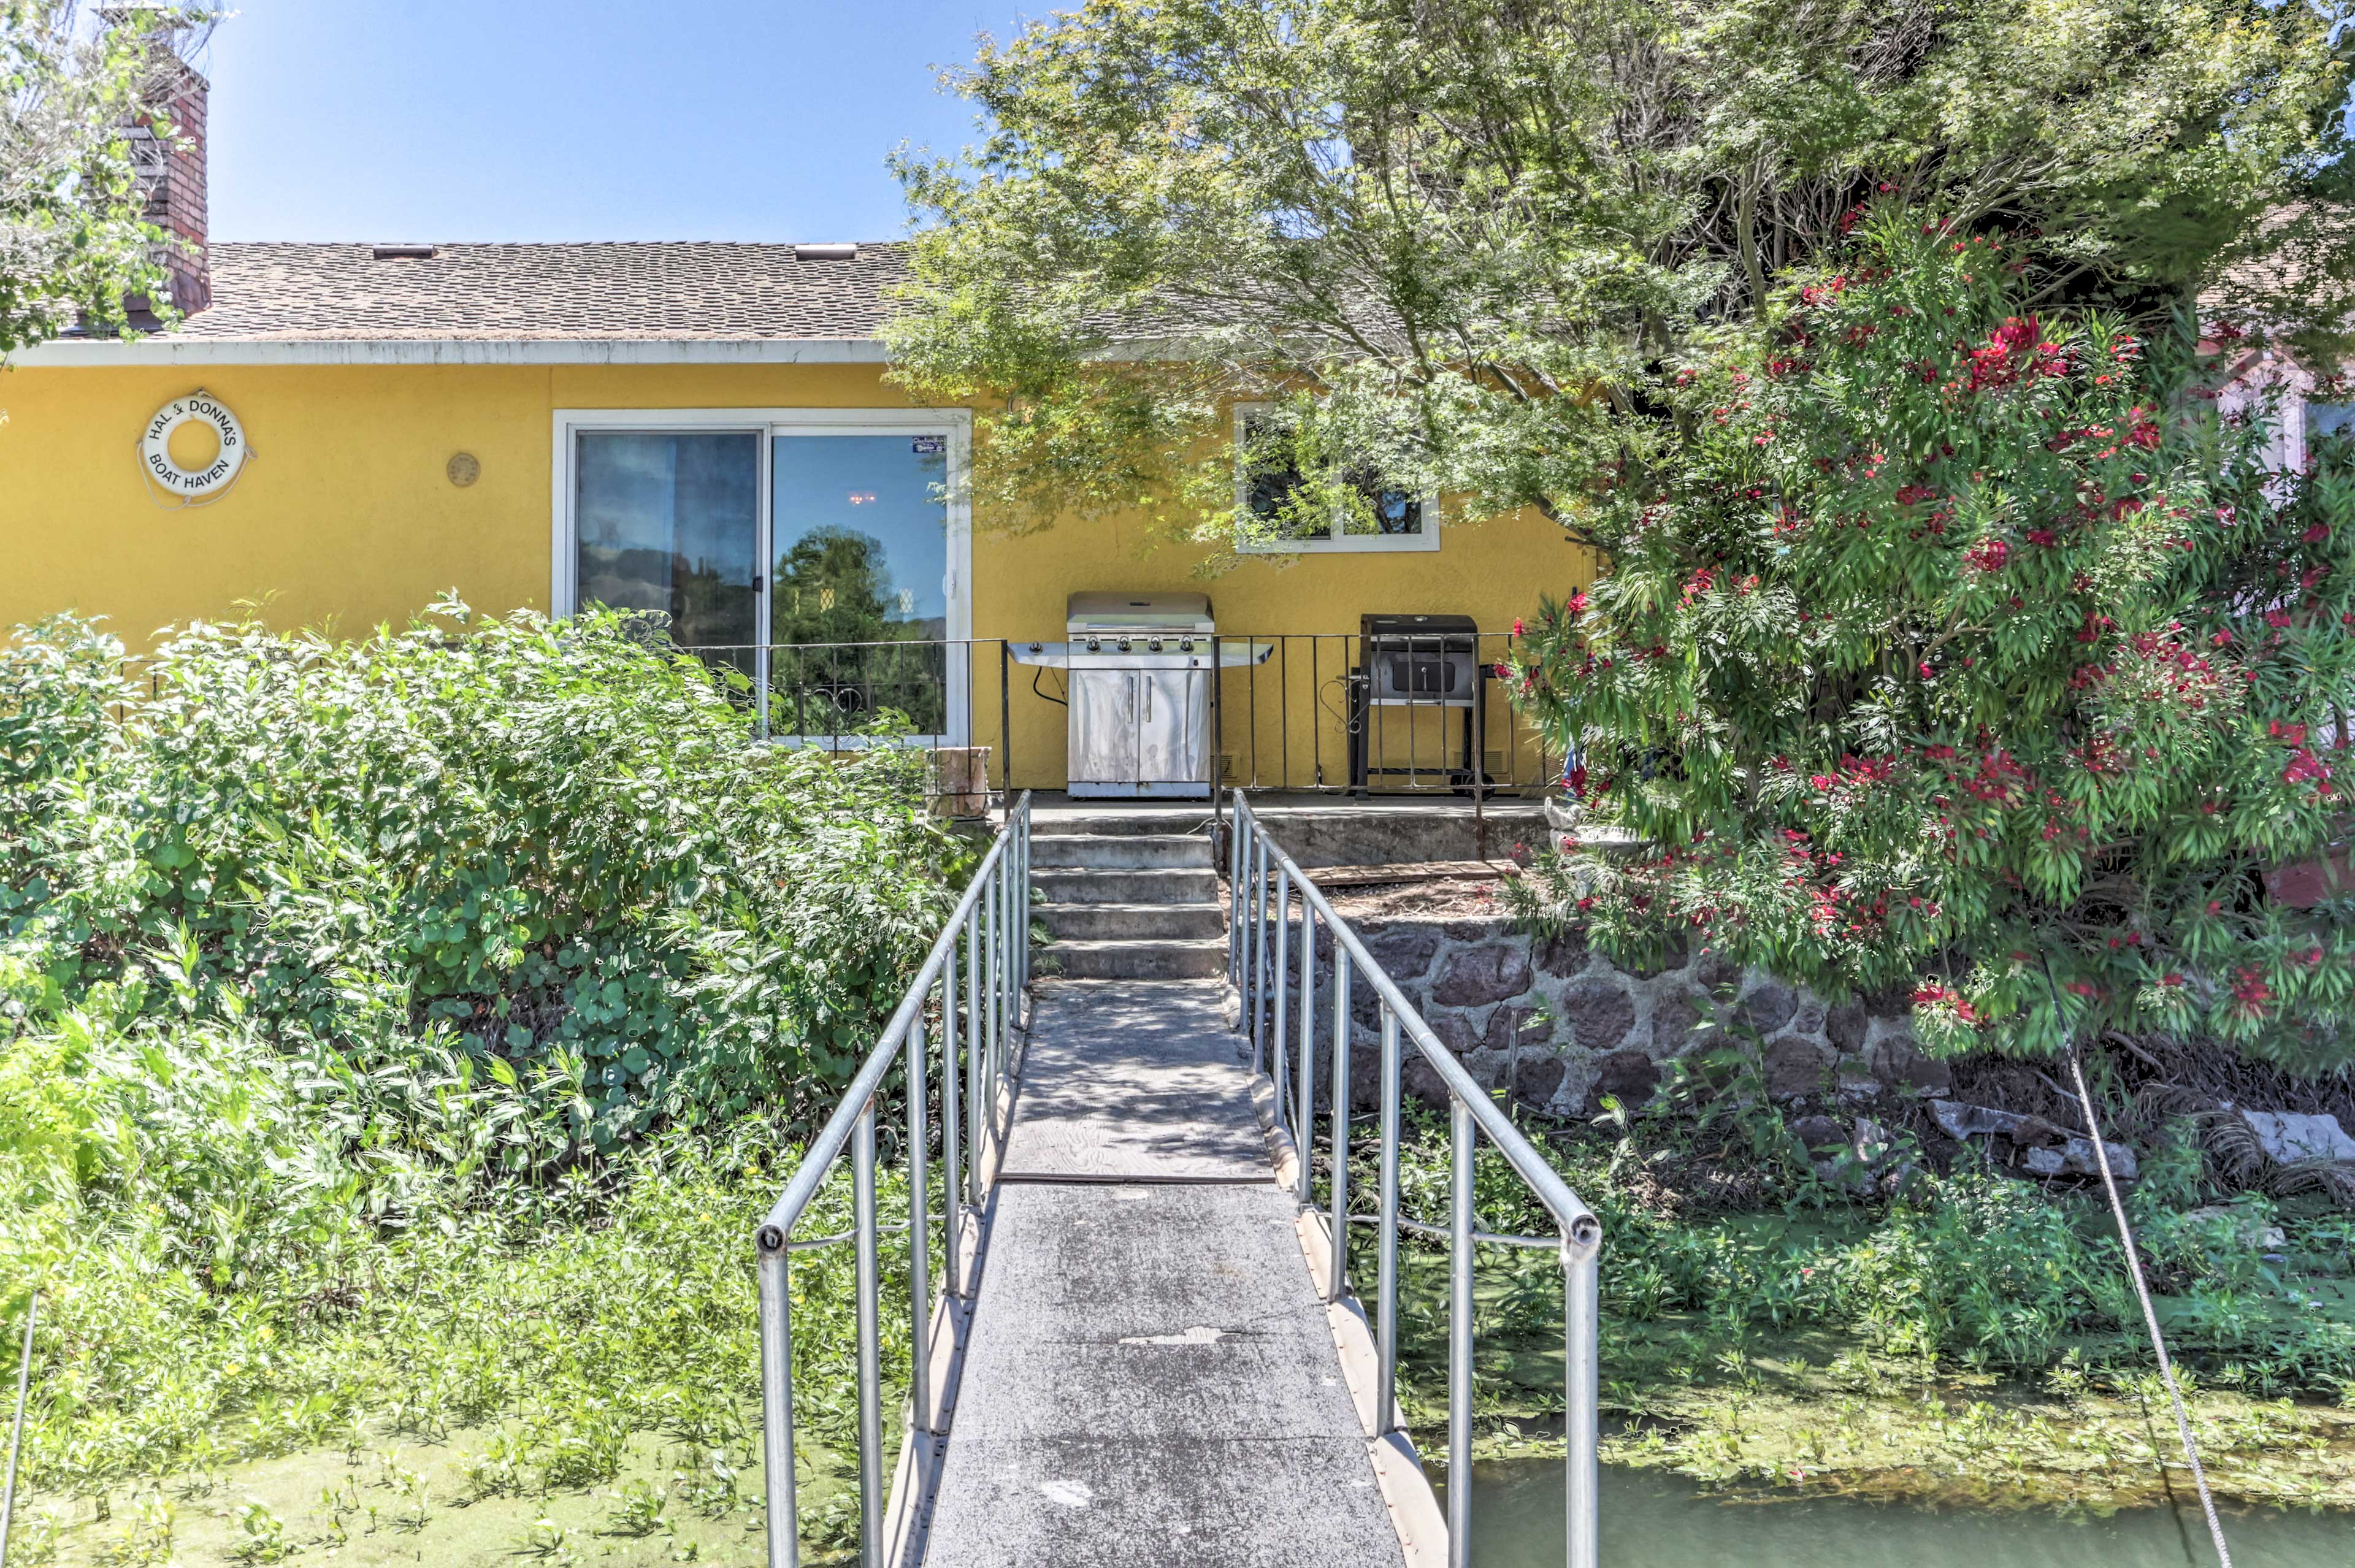 Clearlake Oaks Vacation Rental | Single-Story Home | 2BR | 2BA | 1,200 Sq Ft